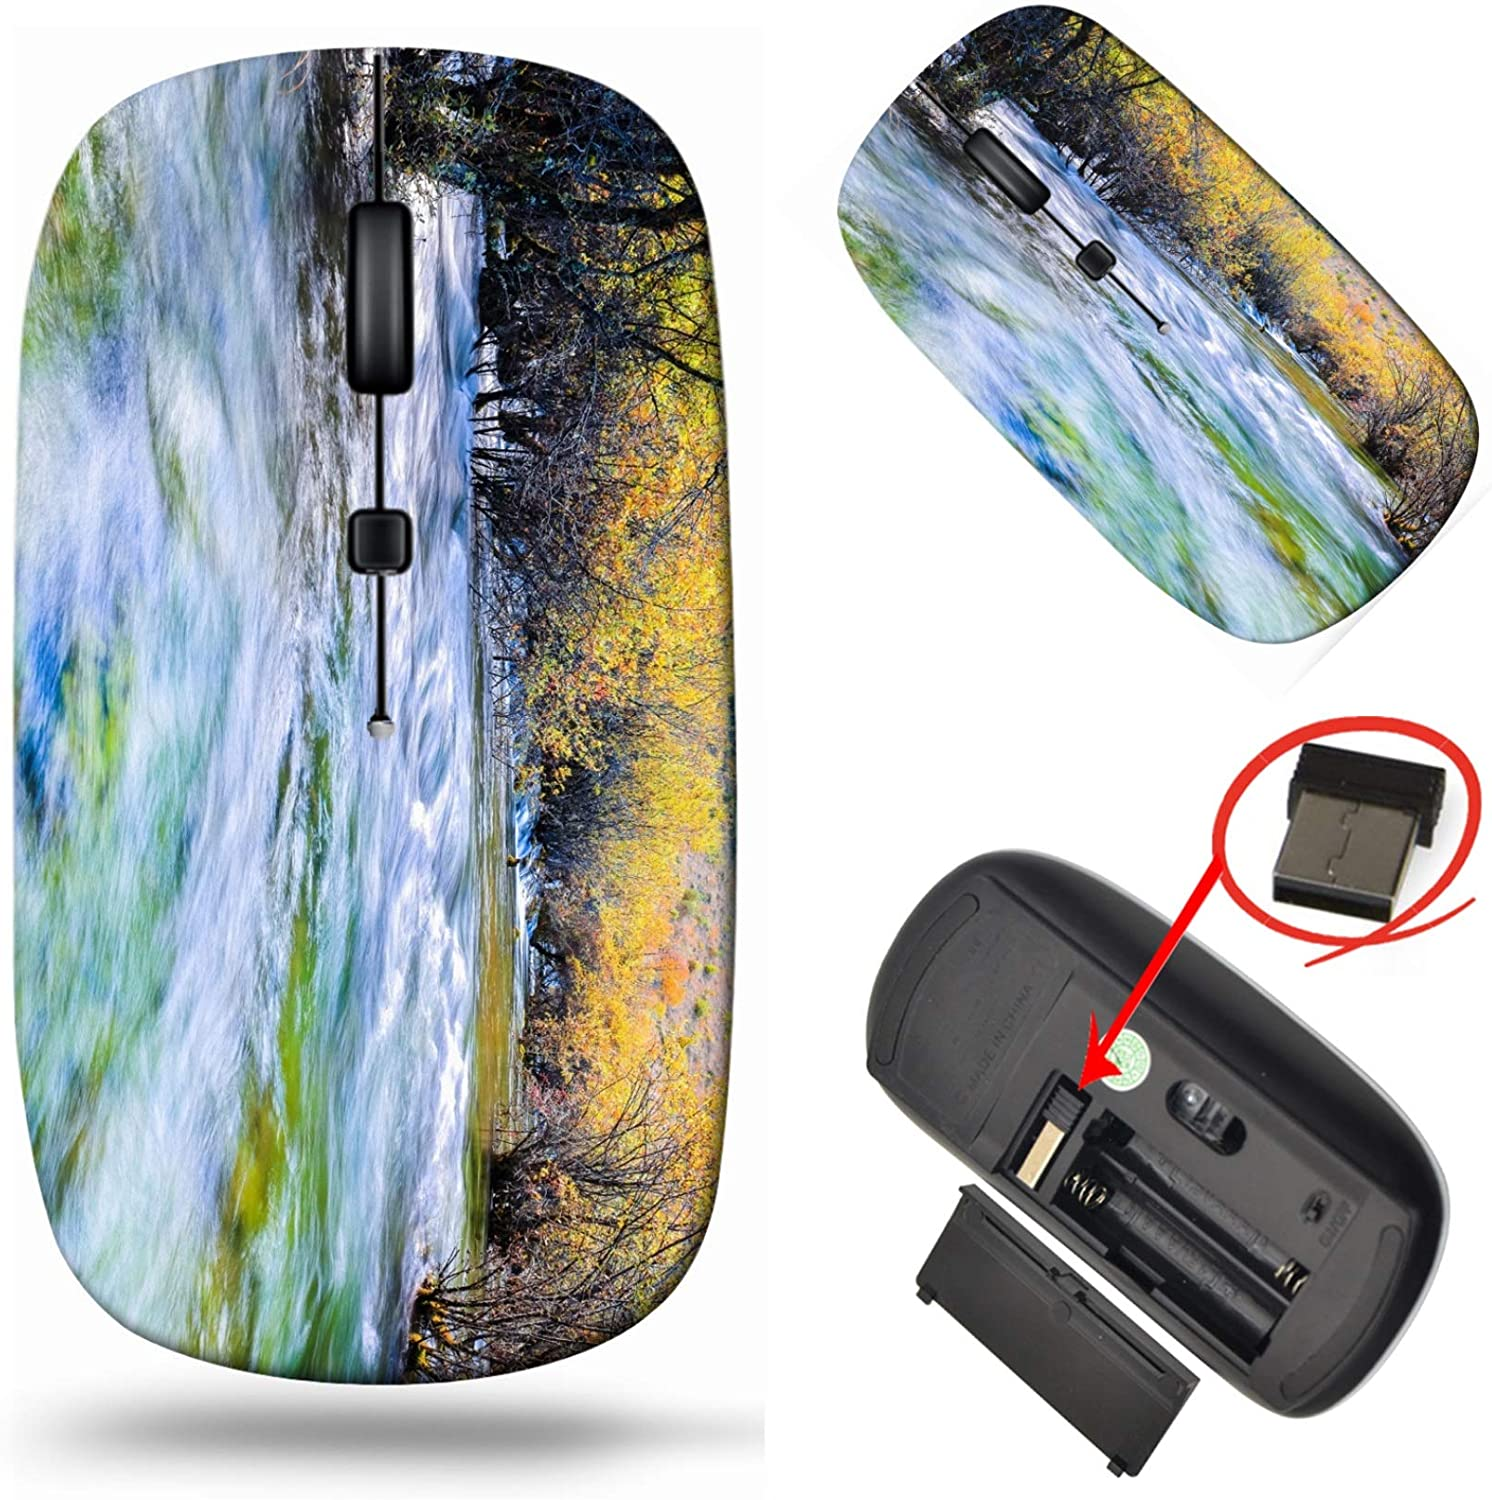 MSD Computer Wireless Mouse Laptop Tra Limited time sale USB 2.4G Beauty products